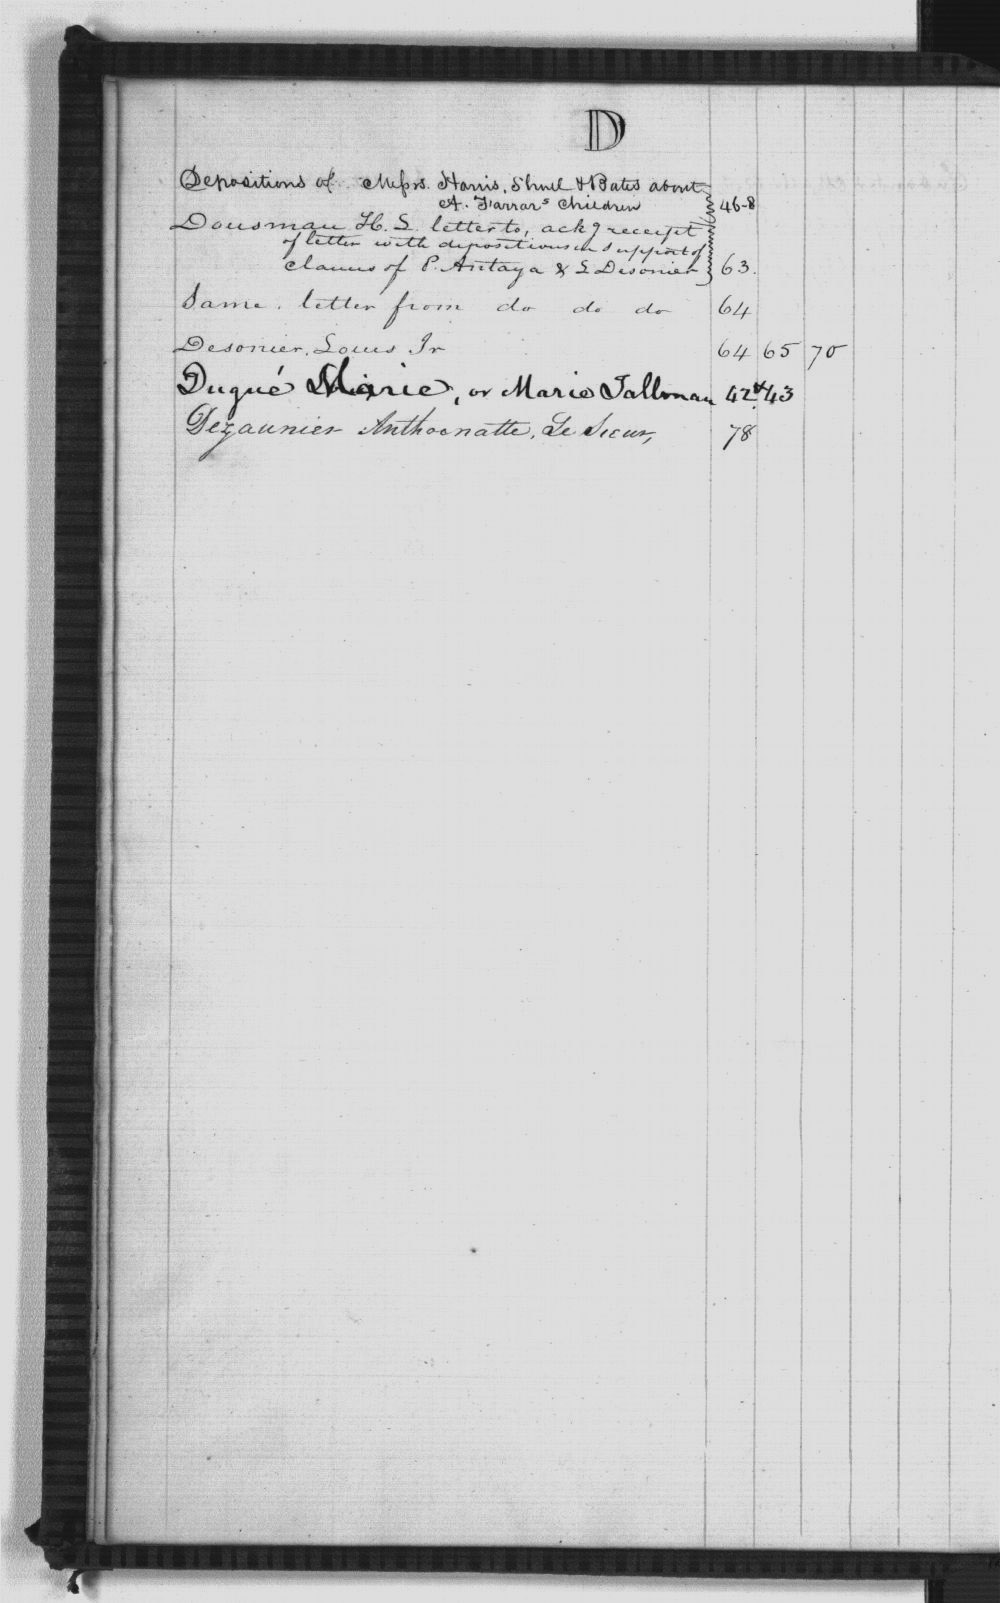 United States Office of Indian Affairs, Central Superintendency, St. Louis, Missouri. Volume 32, Claims under 1824 Sac and Fox Treaty - Index D